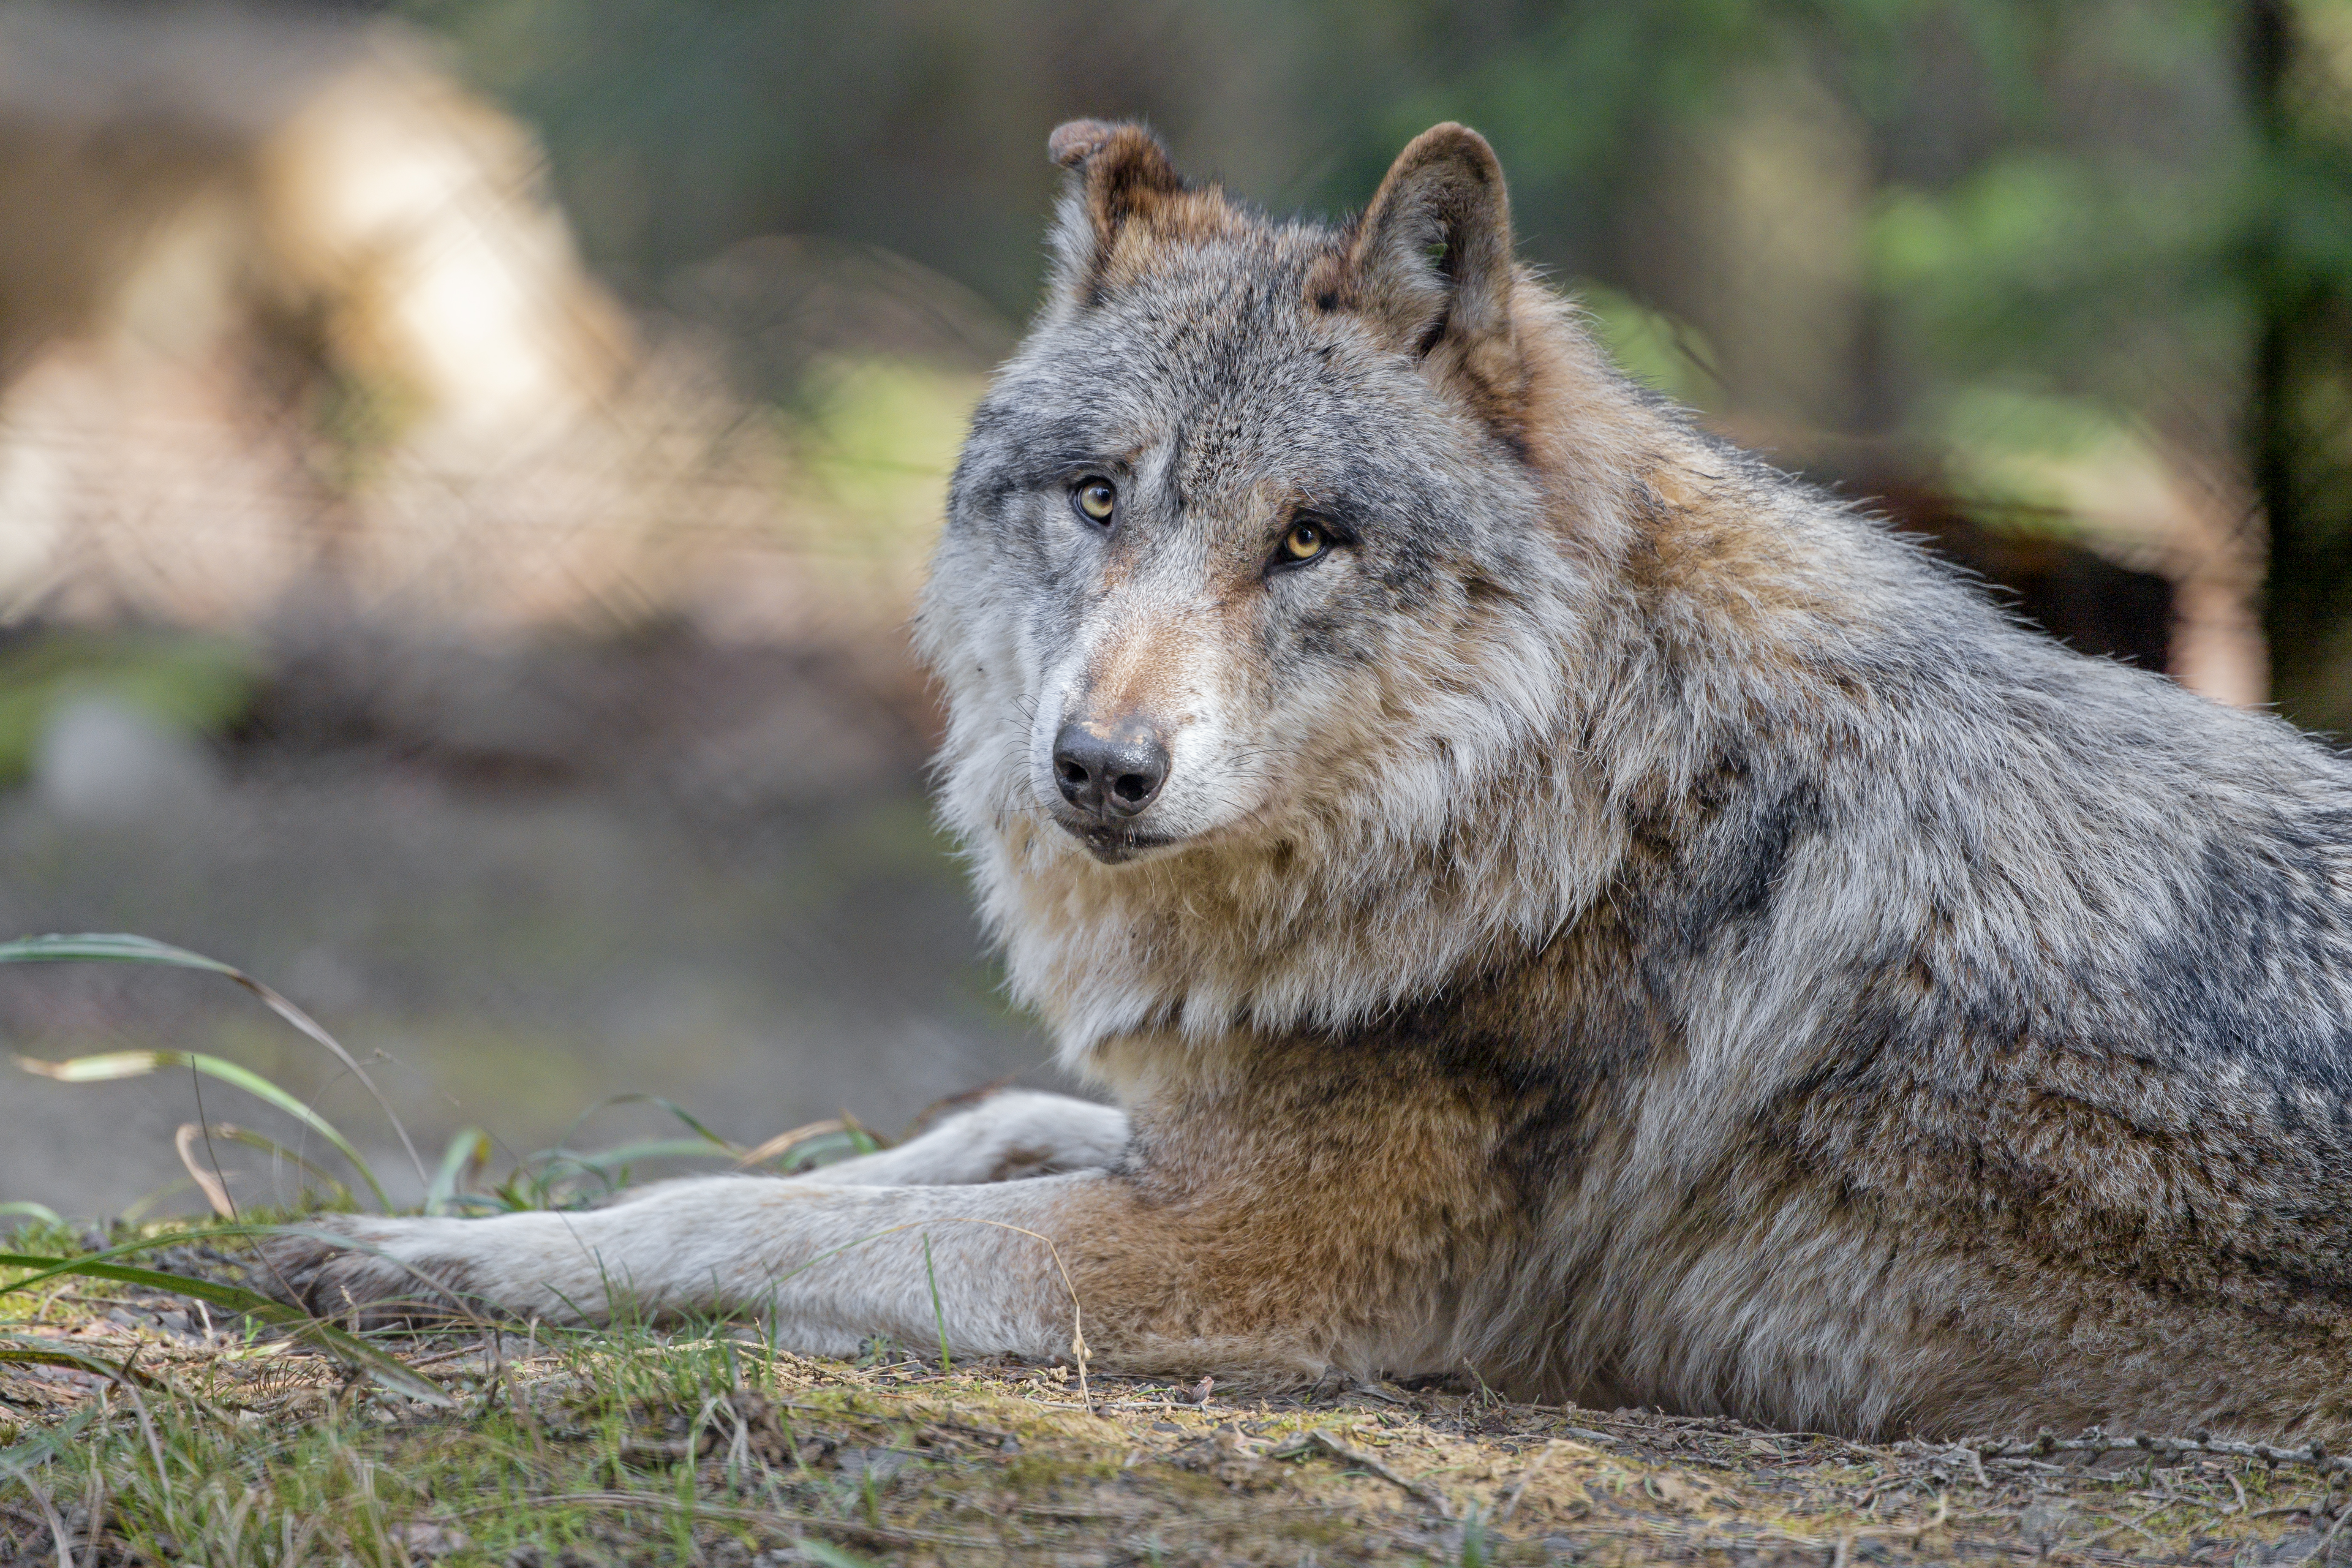 123148 download wallpaper Animals, Wolf, Predator, Animal, Sight, Opinion screensavers and pictures for free